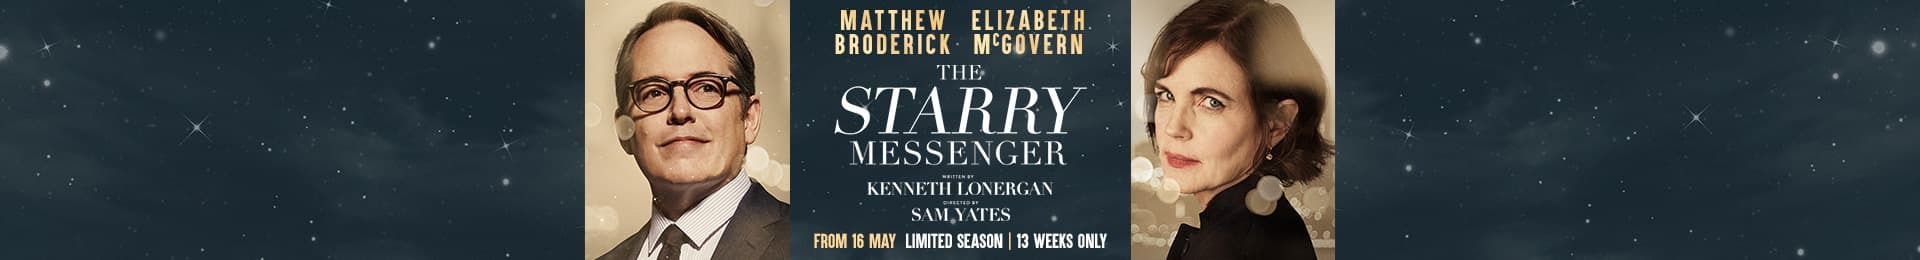 The Starry Messenger banner image